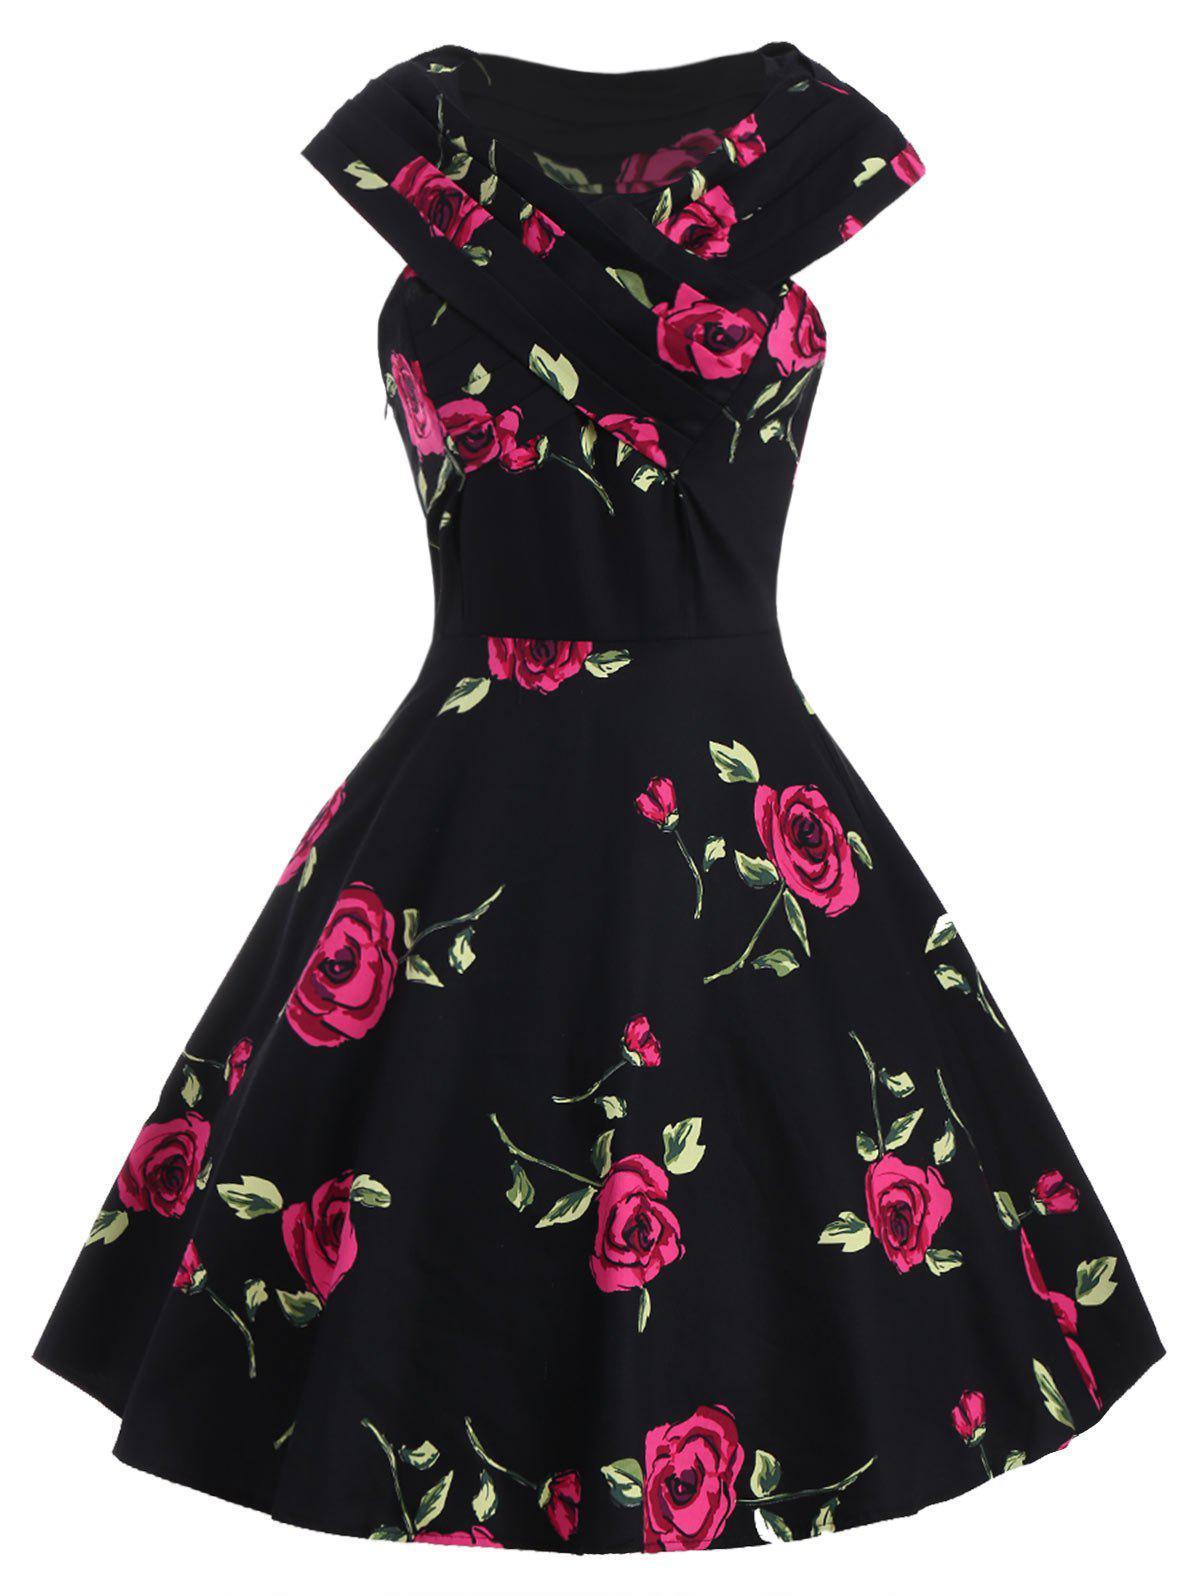 Store Retro Style V-Neck Rose Print Short Sleeve Ball Dress